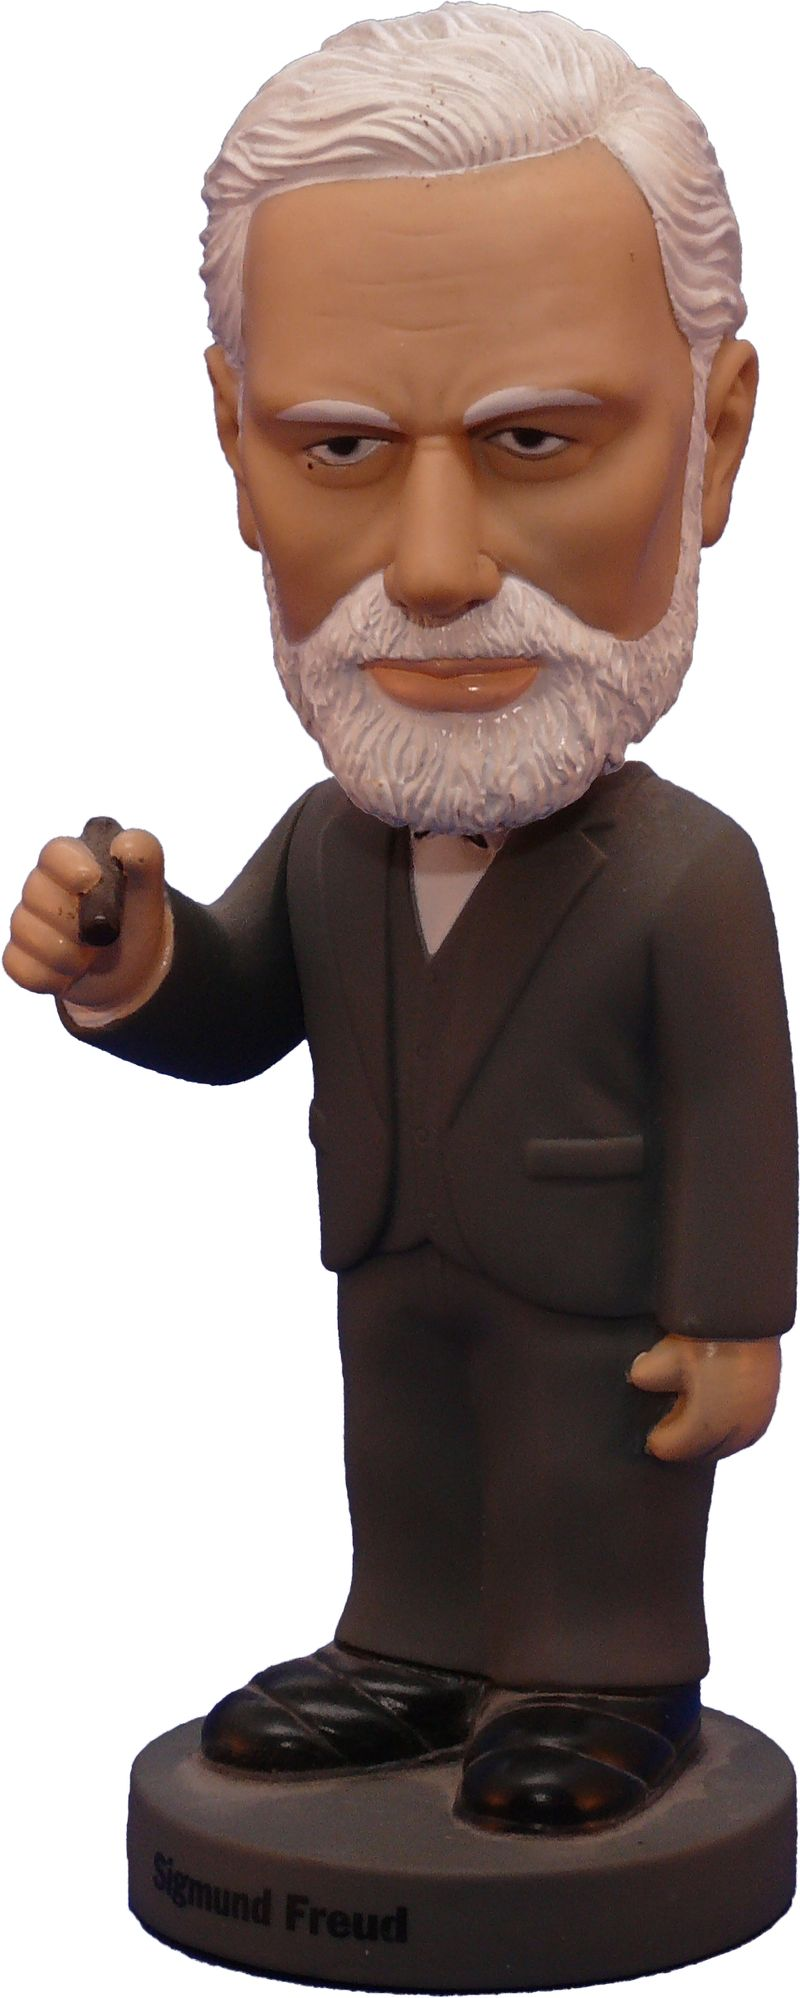 Sigmund Freud bobble head